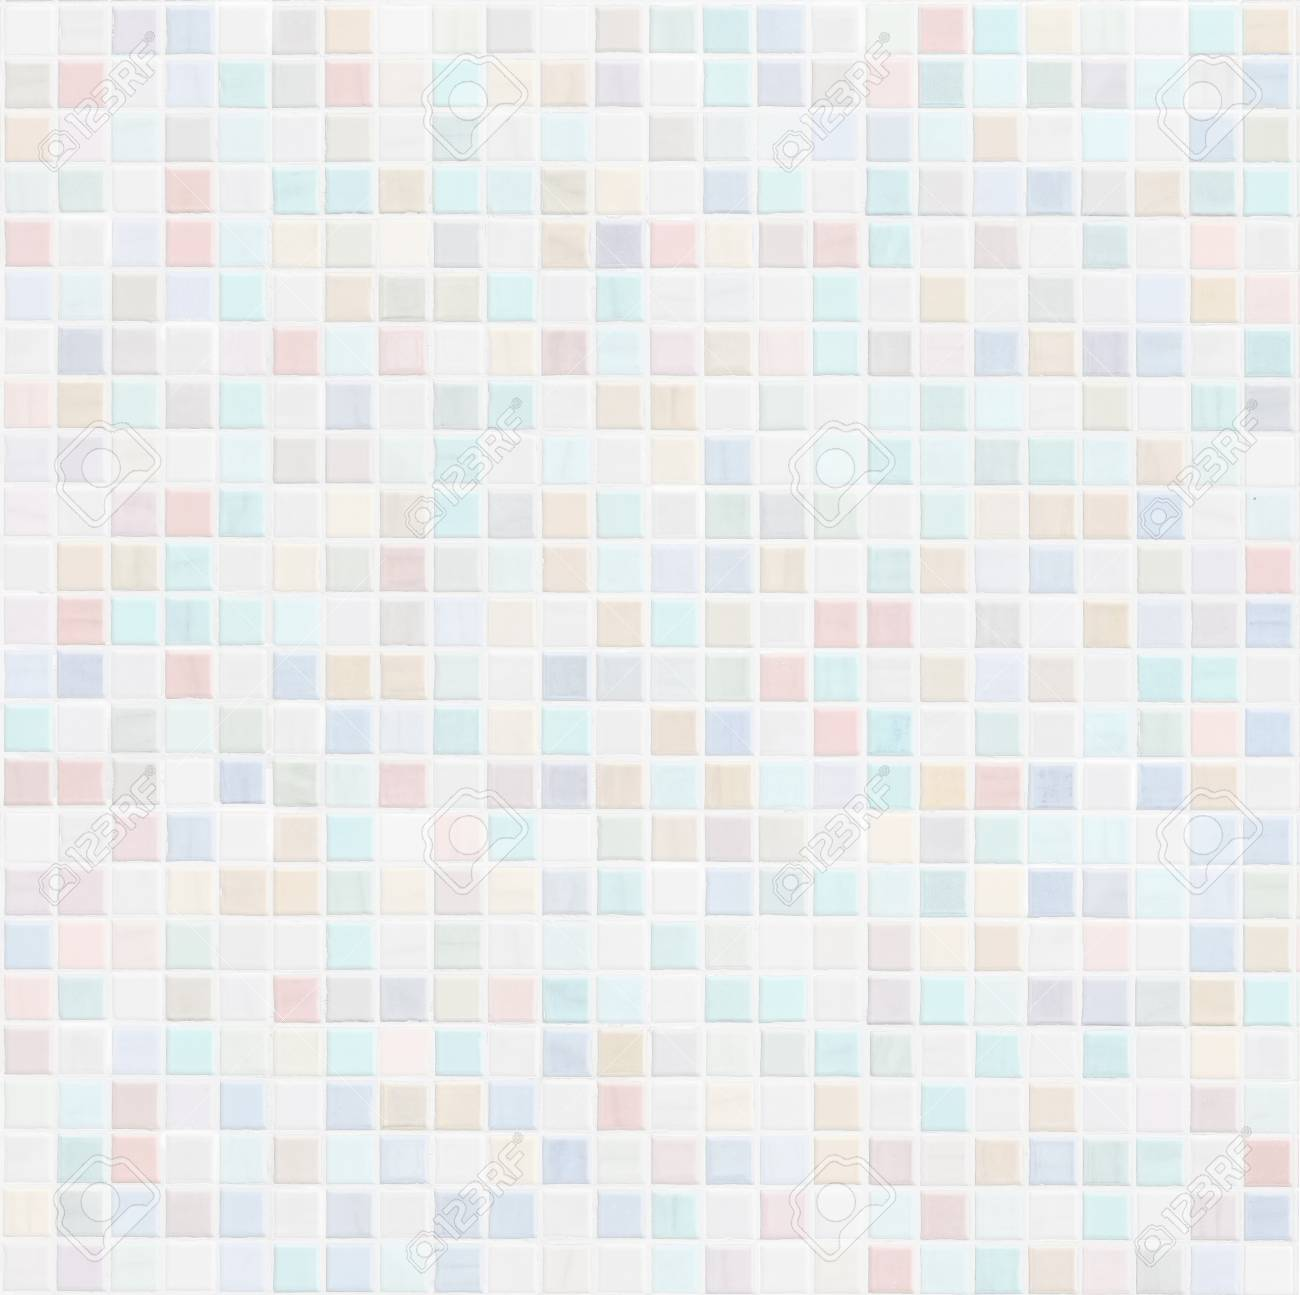 pastel colored ceramic bathroom or kitchen tile wall - 79280084